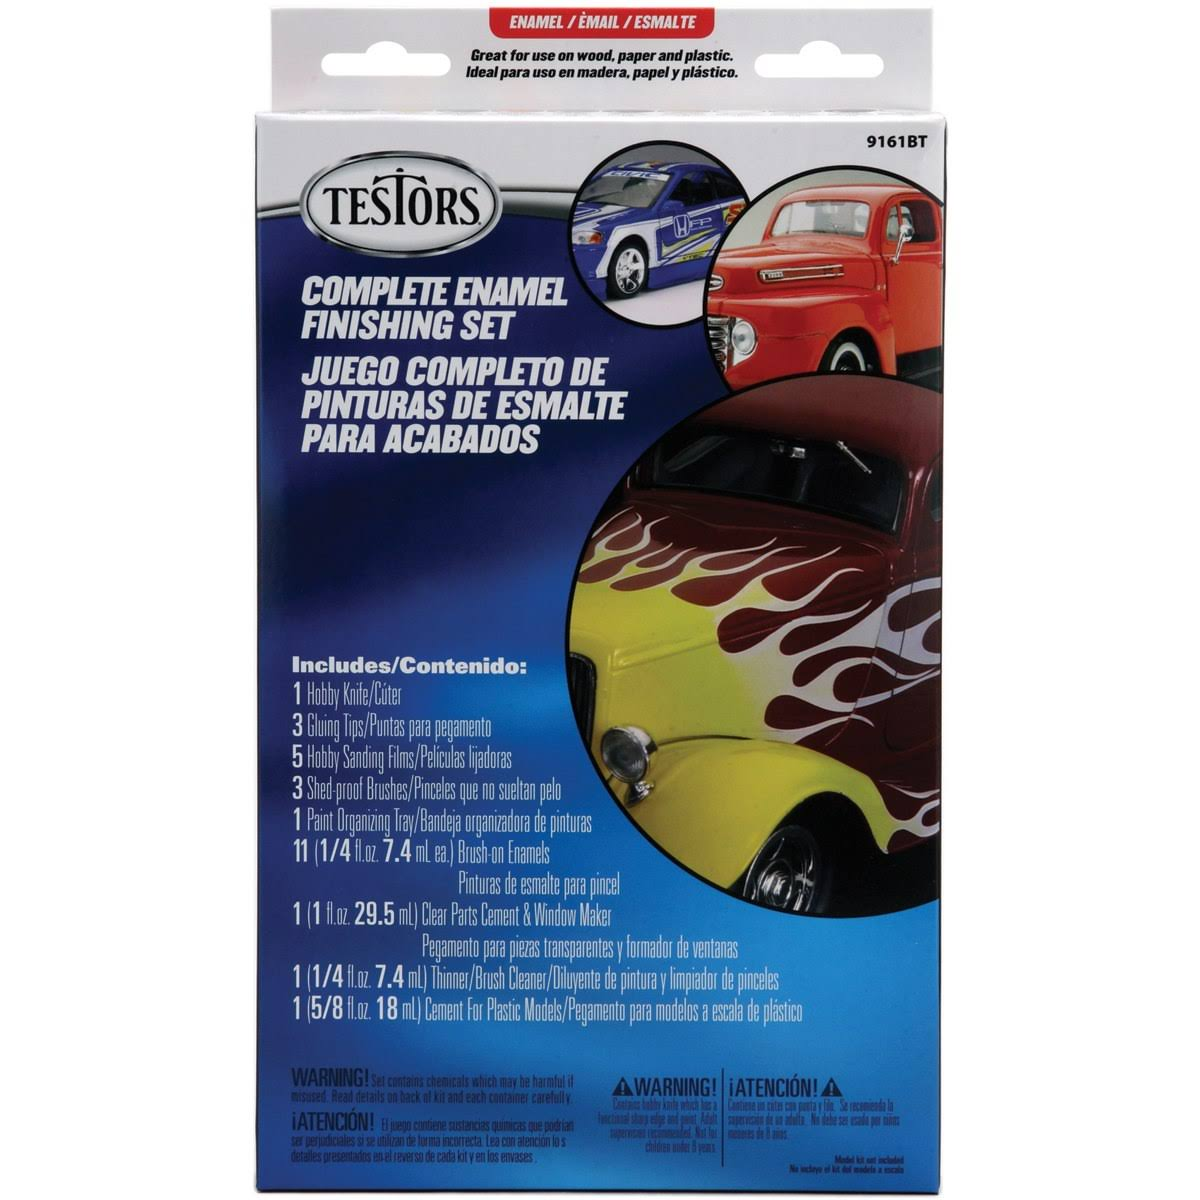 Testors Gloss Enamel Finishing Set